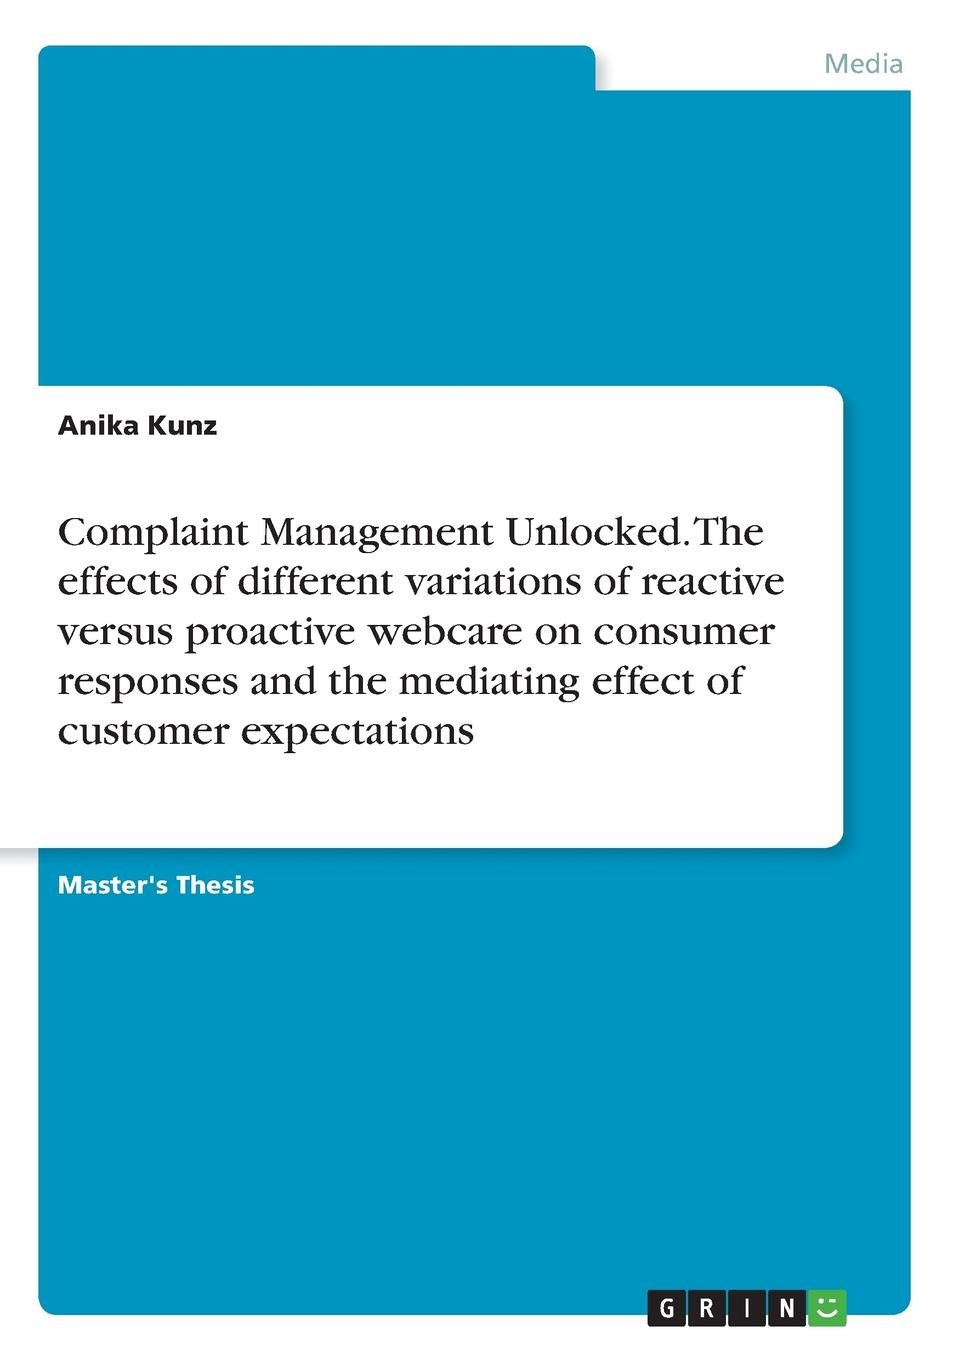 Anika Kunz Complaint Management Unlocked. The effects of different variations of reactive versus proactive webcare on consumer responses and the mediating effect of customer expectations color as a method of influence on consumers